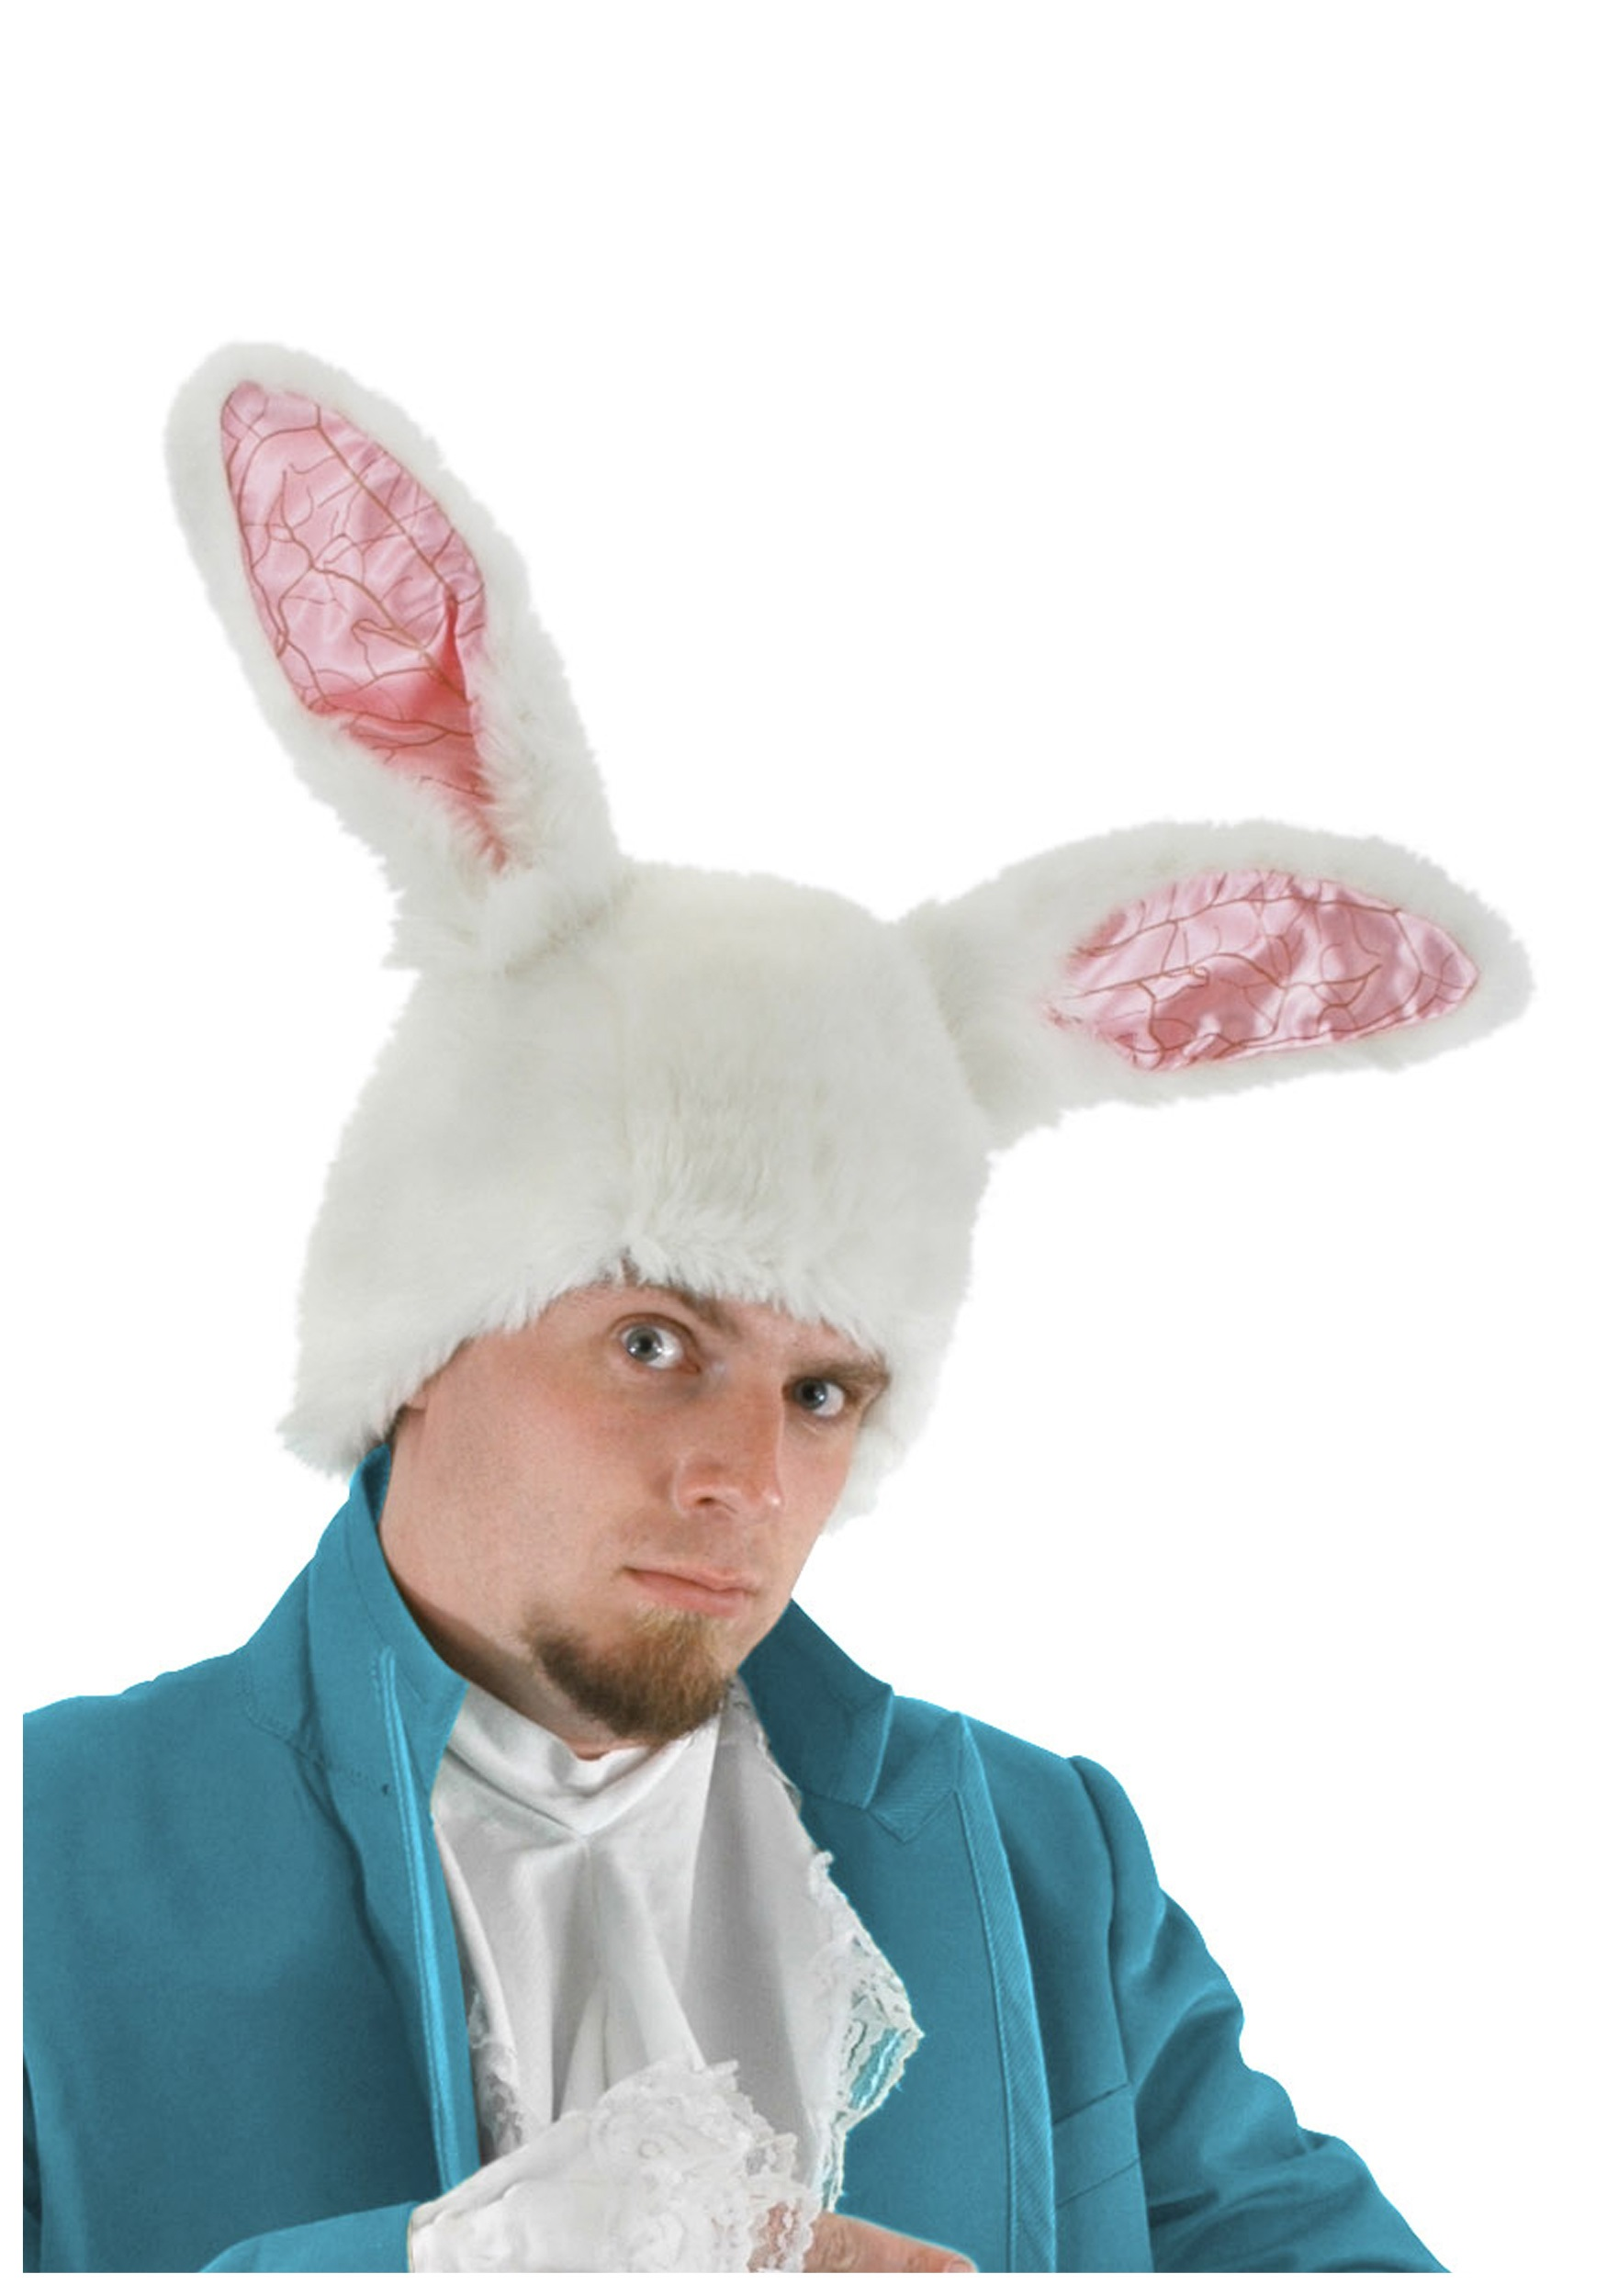 sc 1 st  Halloween Costumes : rabbit in hat costume  - Germanpascual.Com